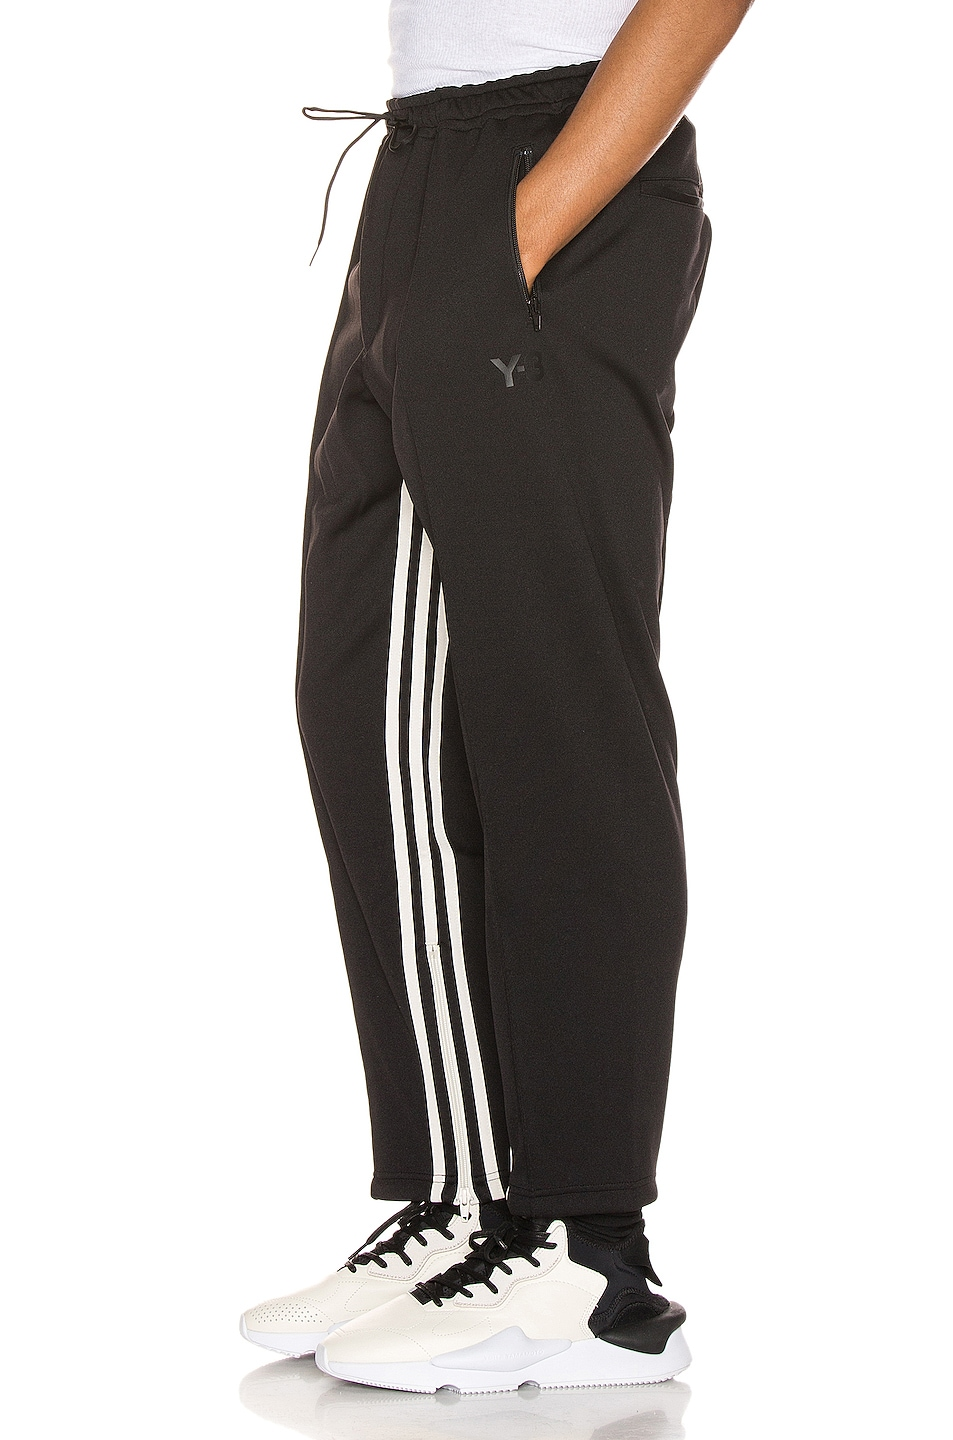 Image 1 of Y-3 Yohji Yamamoto 3 Striped Cropped Track Pant in Black & Ecru